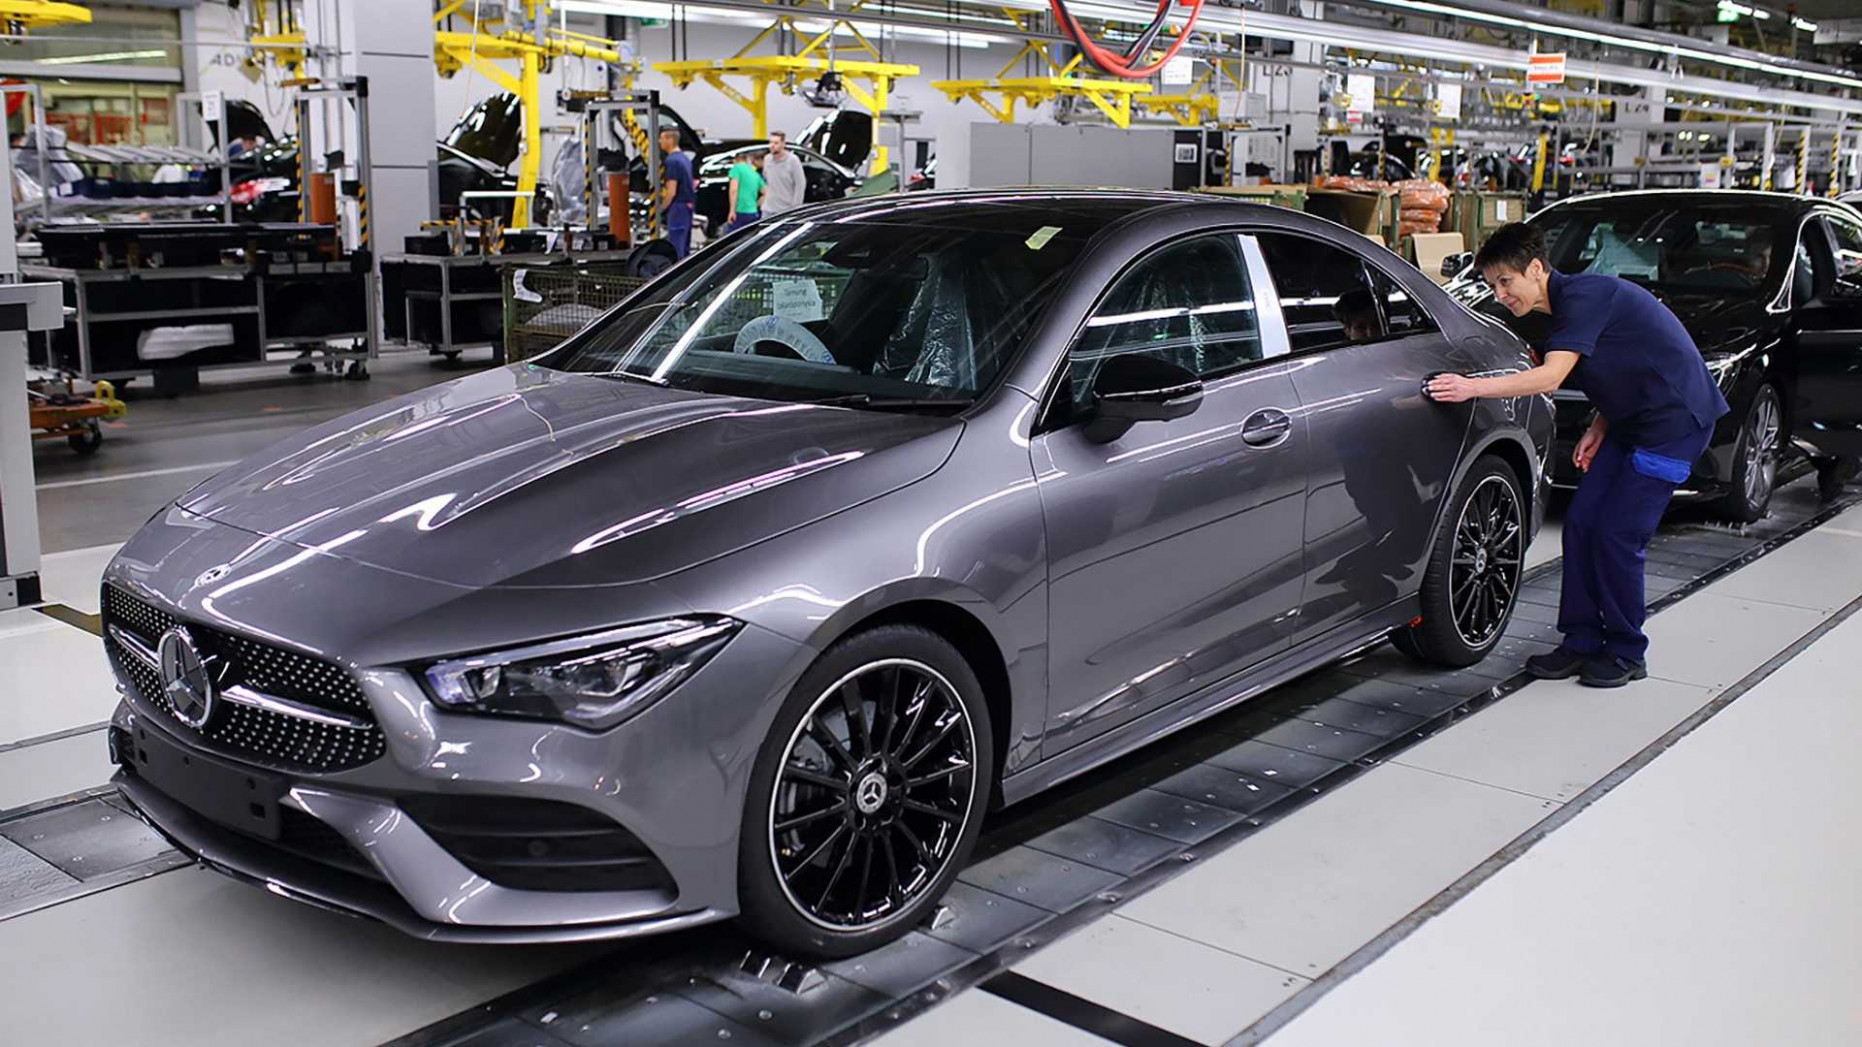 7 Mercedes-Benz CLA-Class production starts in Hungary - 2020 mercedes inventory